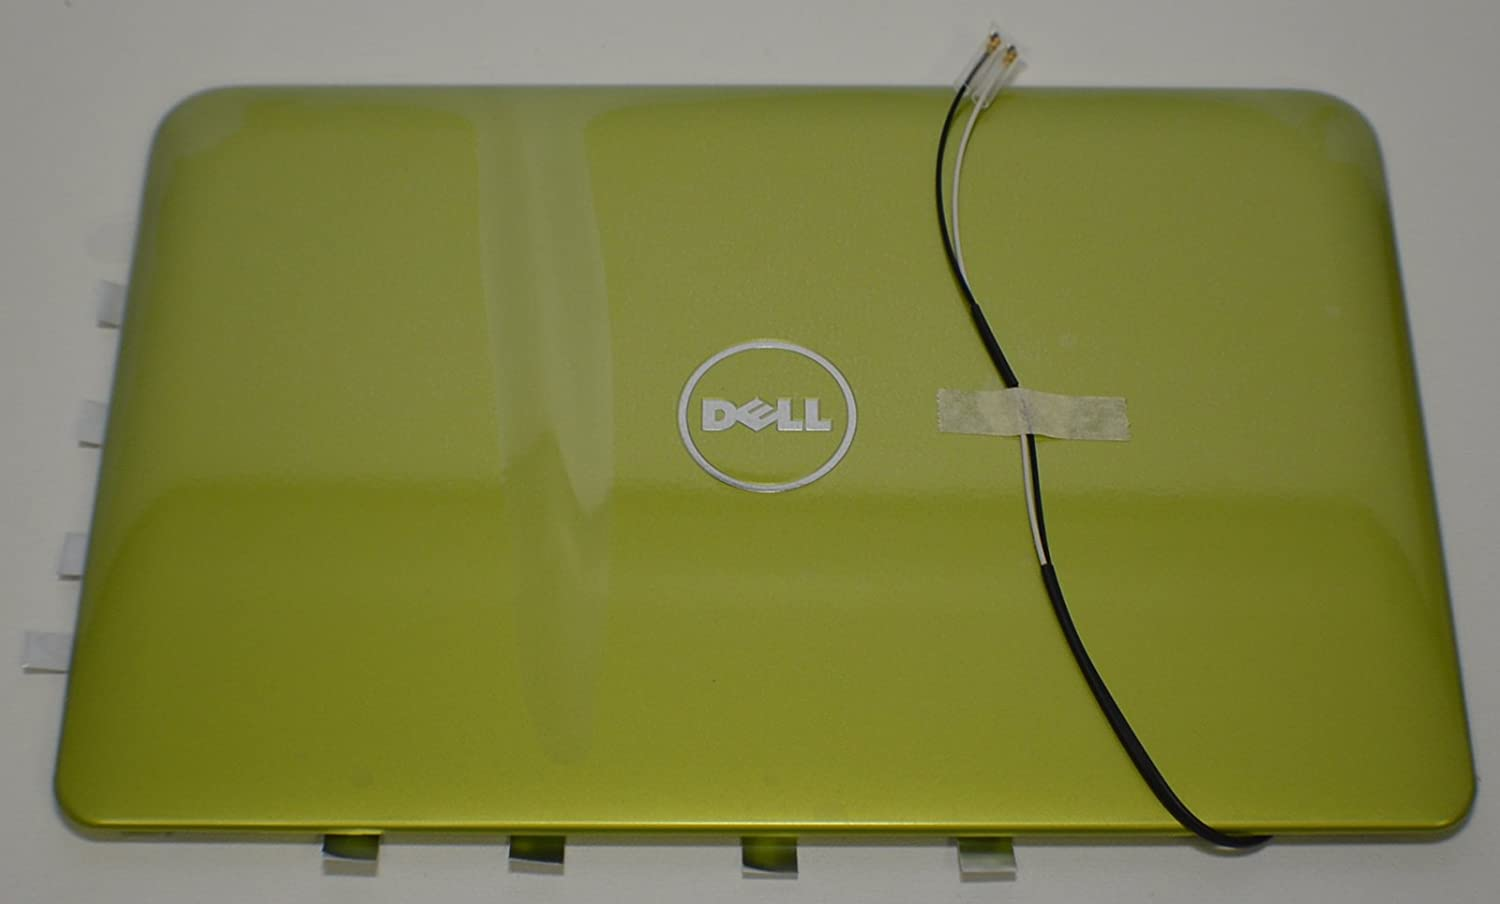 New Dell Inspiron Mini 10 1012 LCD Screen Top Lid Rear Back Cover Monitor Panel Green RW33X Antenna Cable Wire Inspirion Insprion Case Enclosure Housing Casing